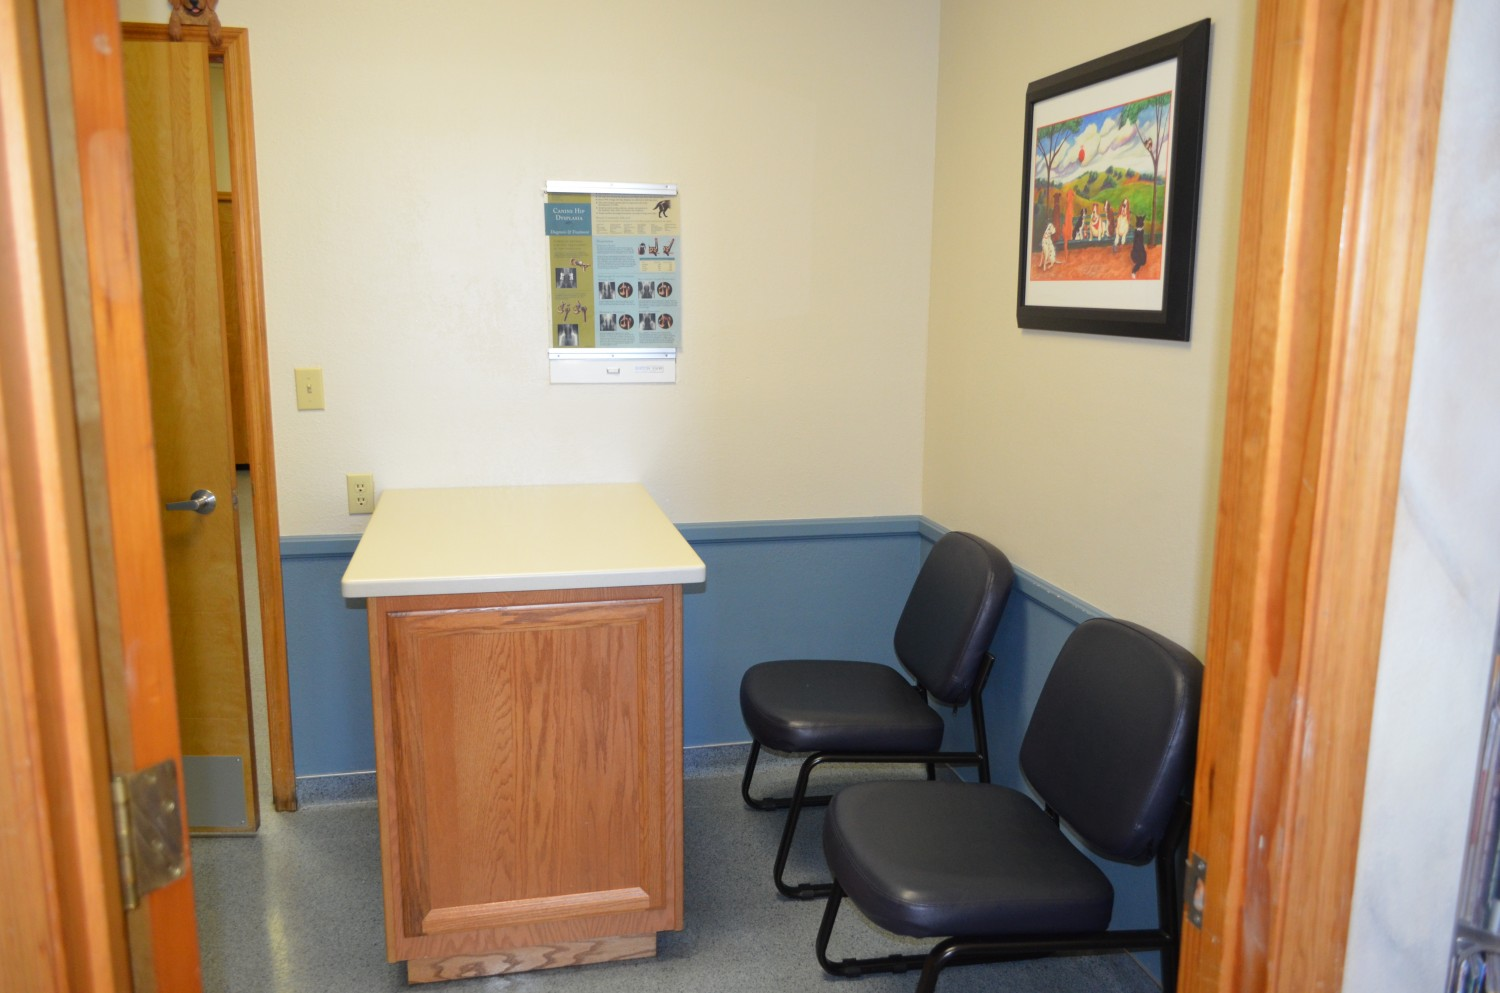 Ahwatukee Animal Care Hospital Exam Rooms